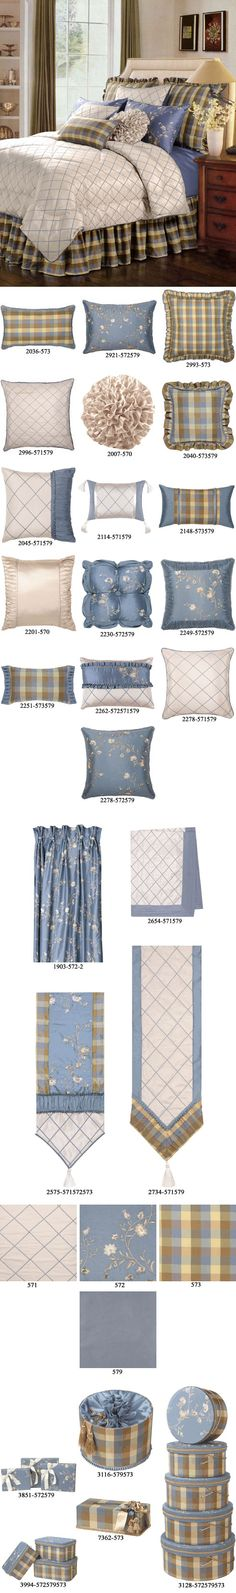 Veranda by Jennifer Taylor Bed Cover Design, Sofa Design, Diy Pillows, Cushions On Sofa, Linen Bedroom, Bedroom Decor, Let's Go To Bed, Curtain Designs, Diy Curtains